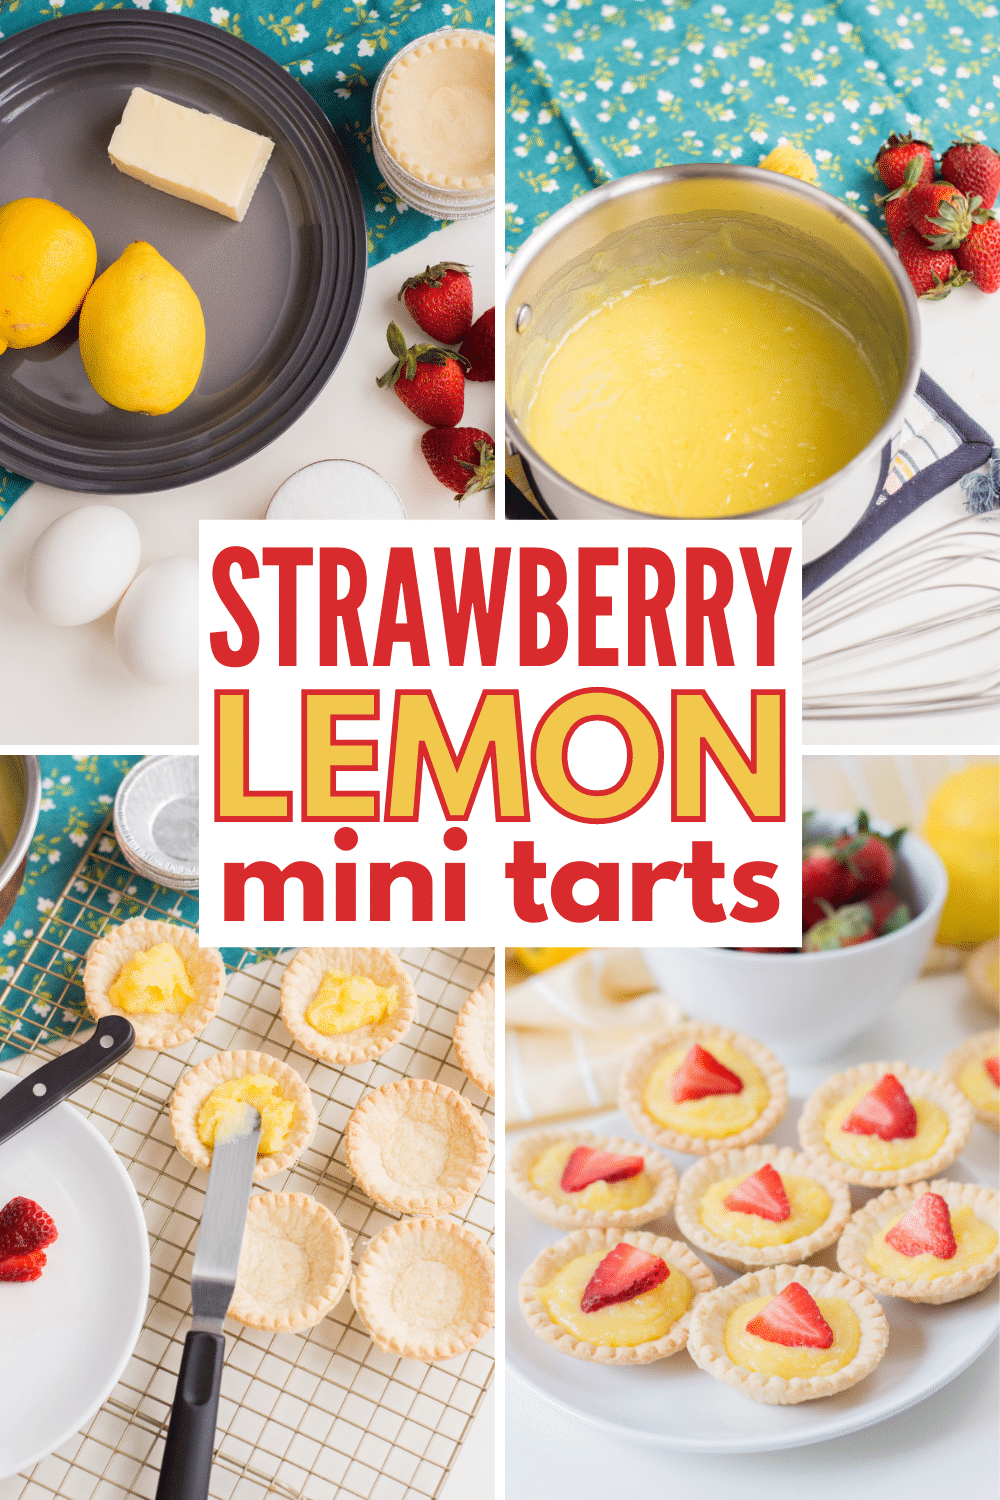 Mini Strawberry Lemon Tarts are an easy spring dessert full of delicious lemon flavor. Using mini pie shells saves time and makes this simple to make. #lemontarts #strawberry #easydesserts via @wondermomwannab